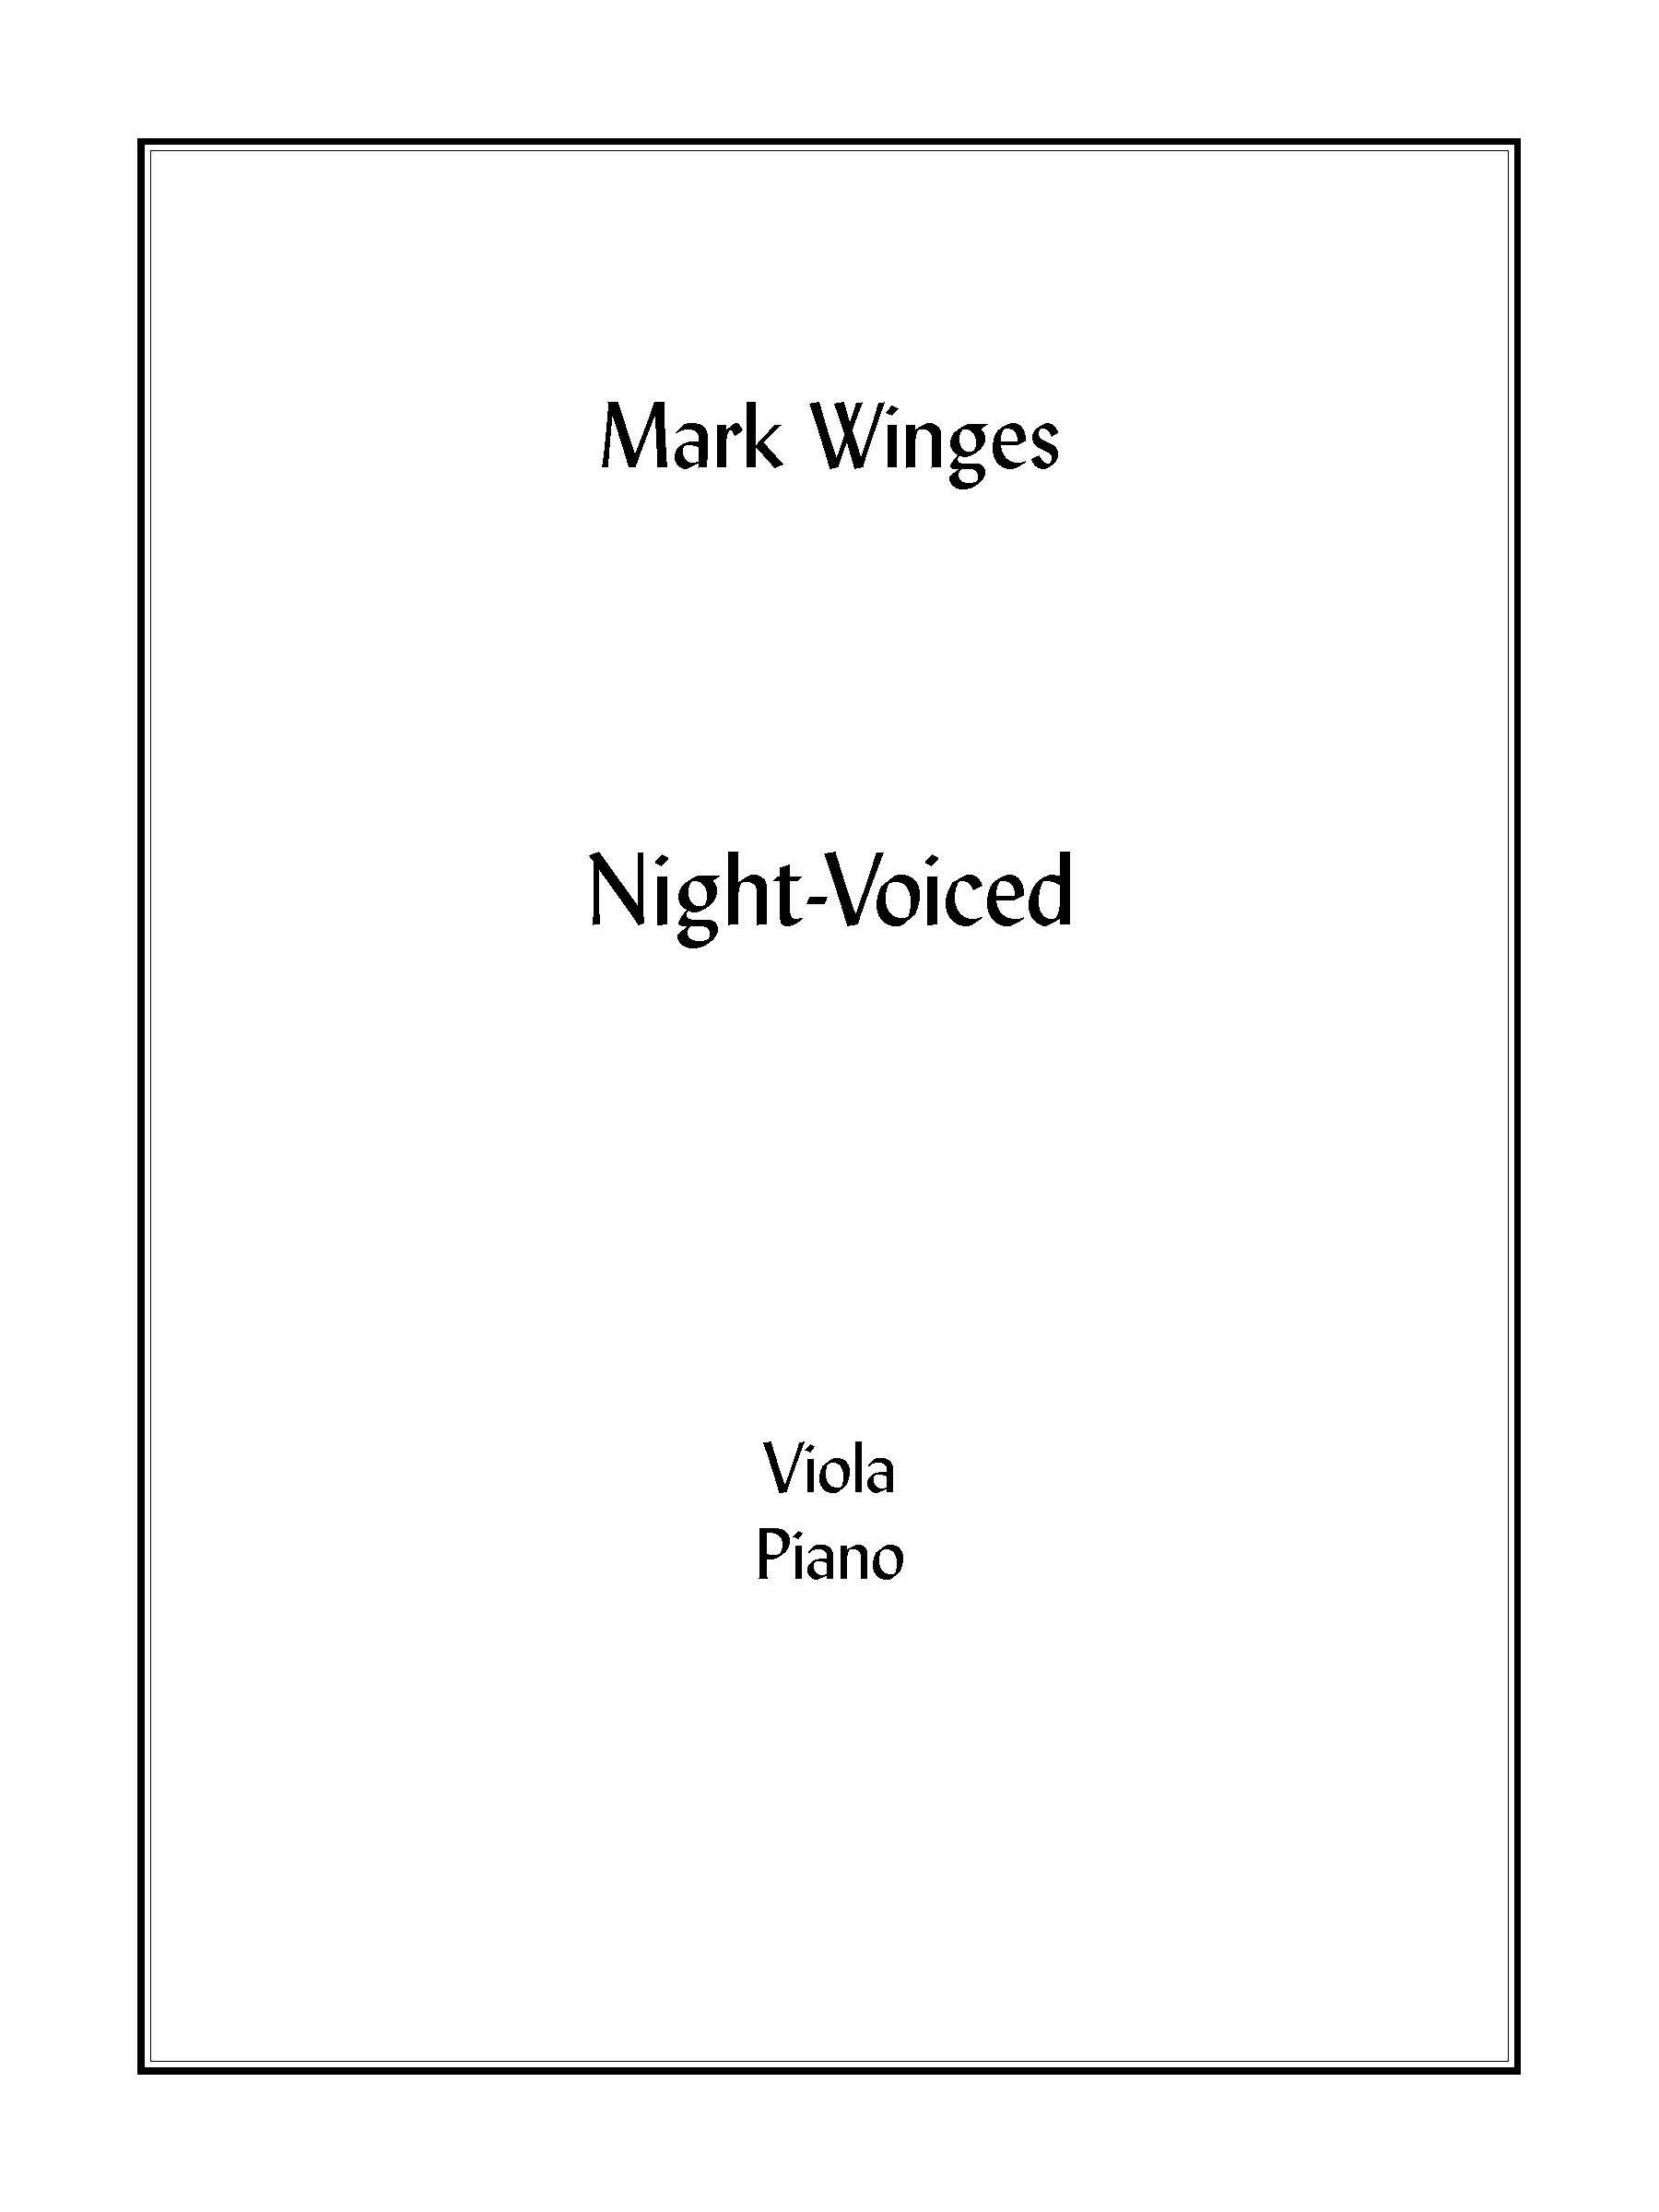 Night-Voiced (piano version) for Viola & Piano